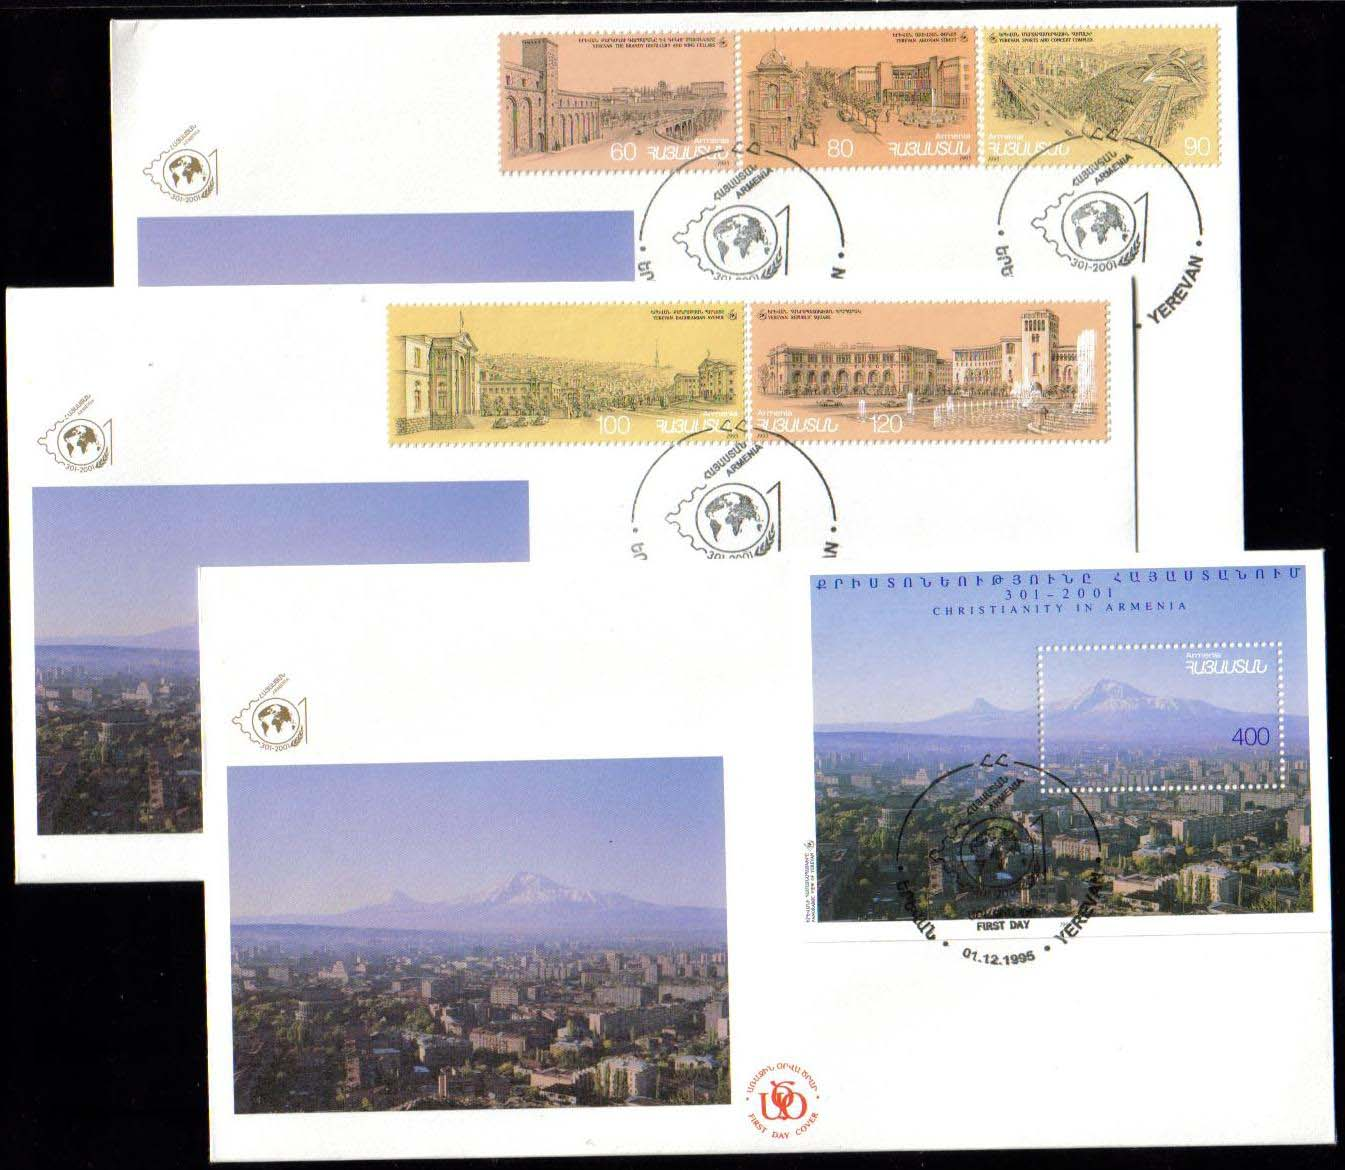 <Font 2-076g>073-78, FDC, Christianity in Armenia, Complete set of 5 and the S/S on three FDC, signed by Souren Arakelov Vice-President of Armenia 2001.  (50 complete sets were signed on the first day of the exhibition), Scott #515-520. <p> <a href=&quot;/images/ArmenianStamps-073-078-FDC-Set.jpg&quot;>   <font color=green><b>View the image</b></a></font>